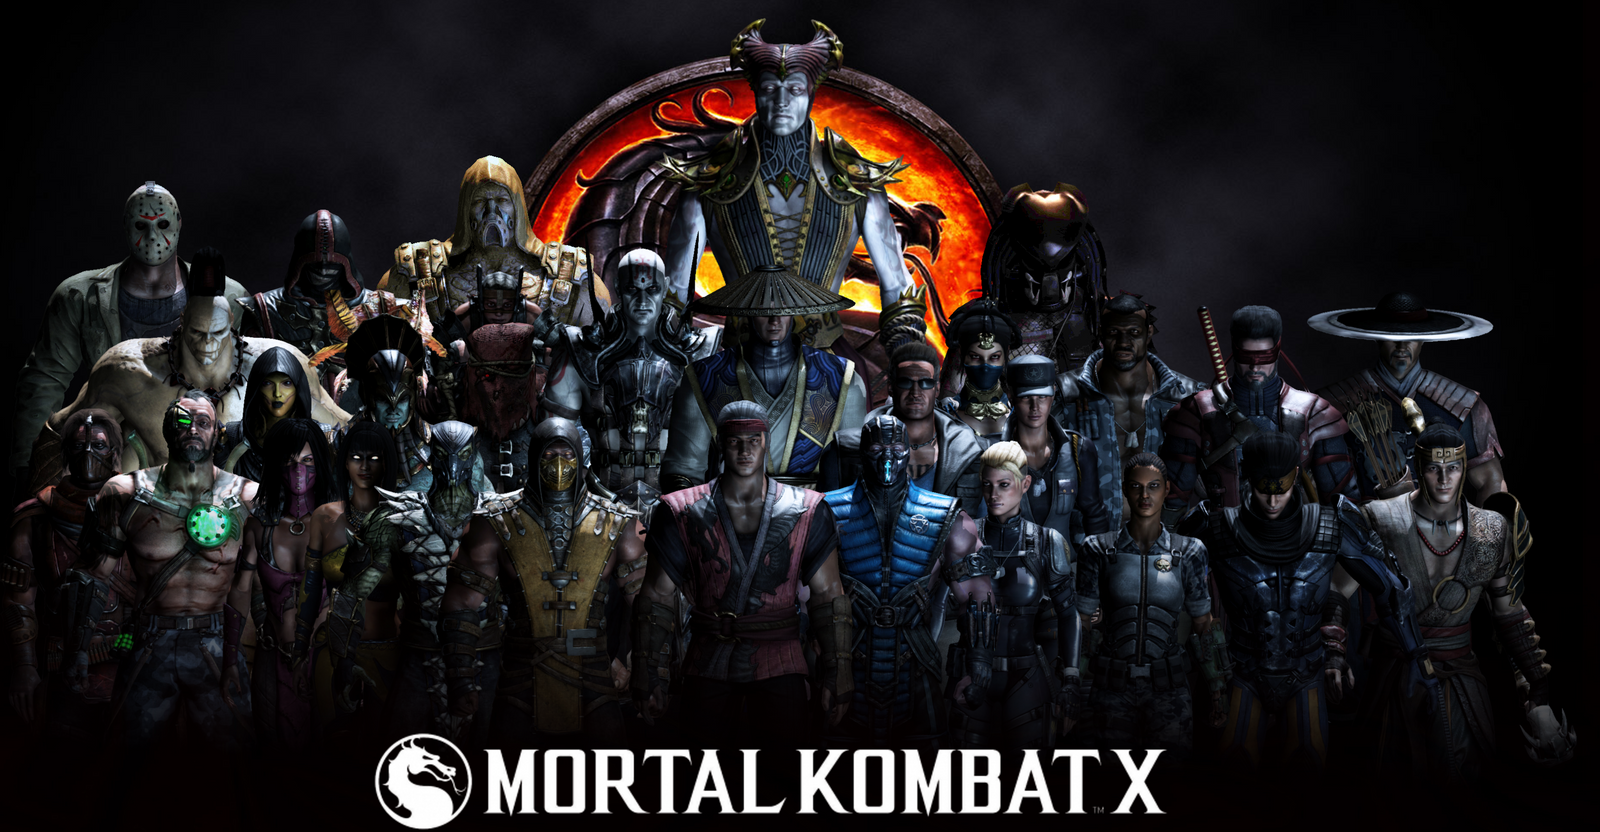 Mortal Kombat X Background: Mortal Kombat X Wallpaper By ArkhamNatic On DeviantArt